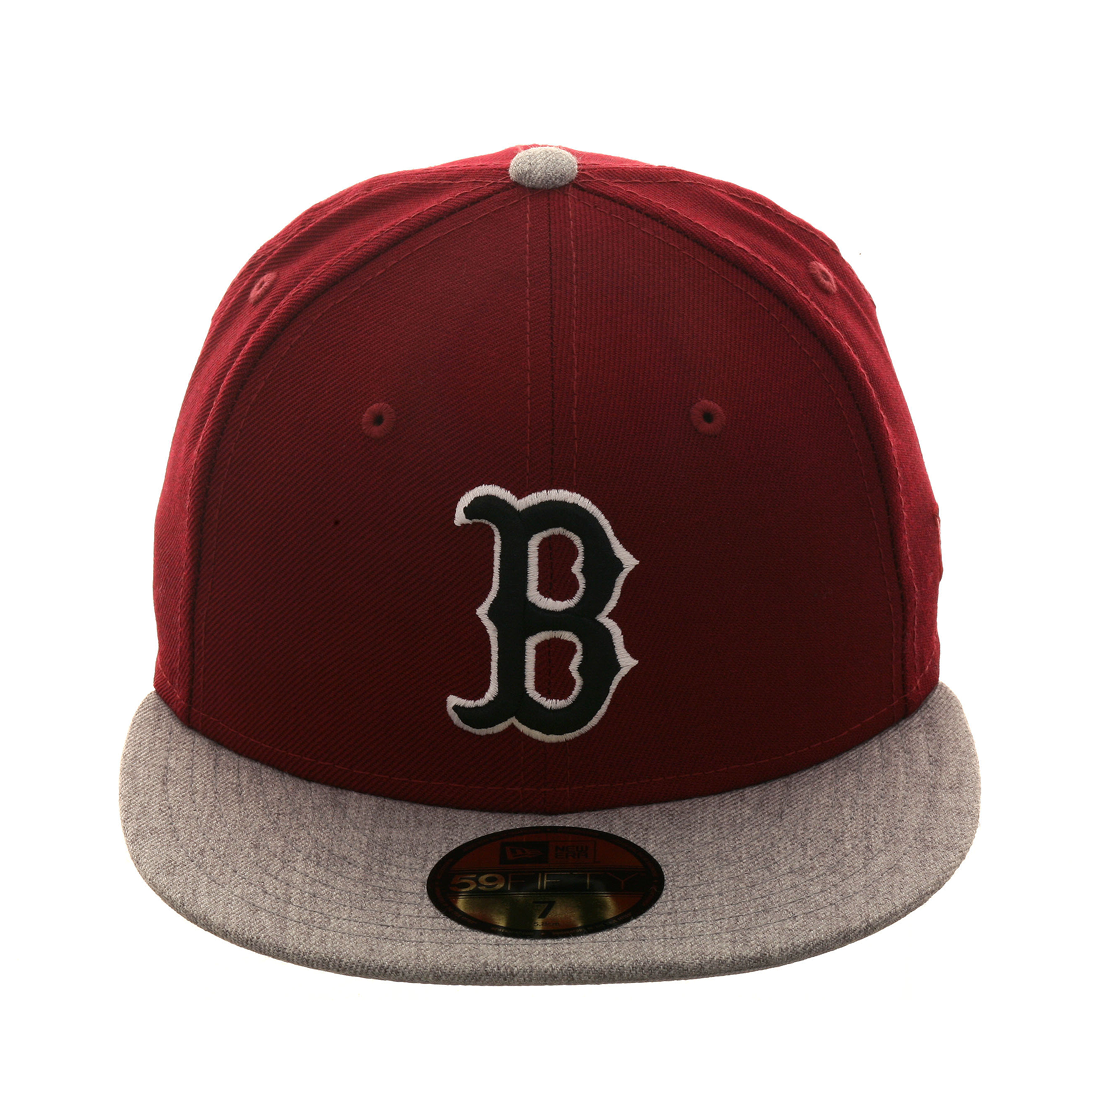 Exclusive New Era 59fifty Boston Red Sox Hat 2t Maroon Heather Gray 19 98 Save 20 01 Boston Red Sox Hat Red Sox Hat New Era 59fifty